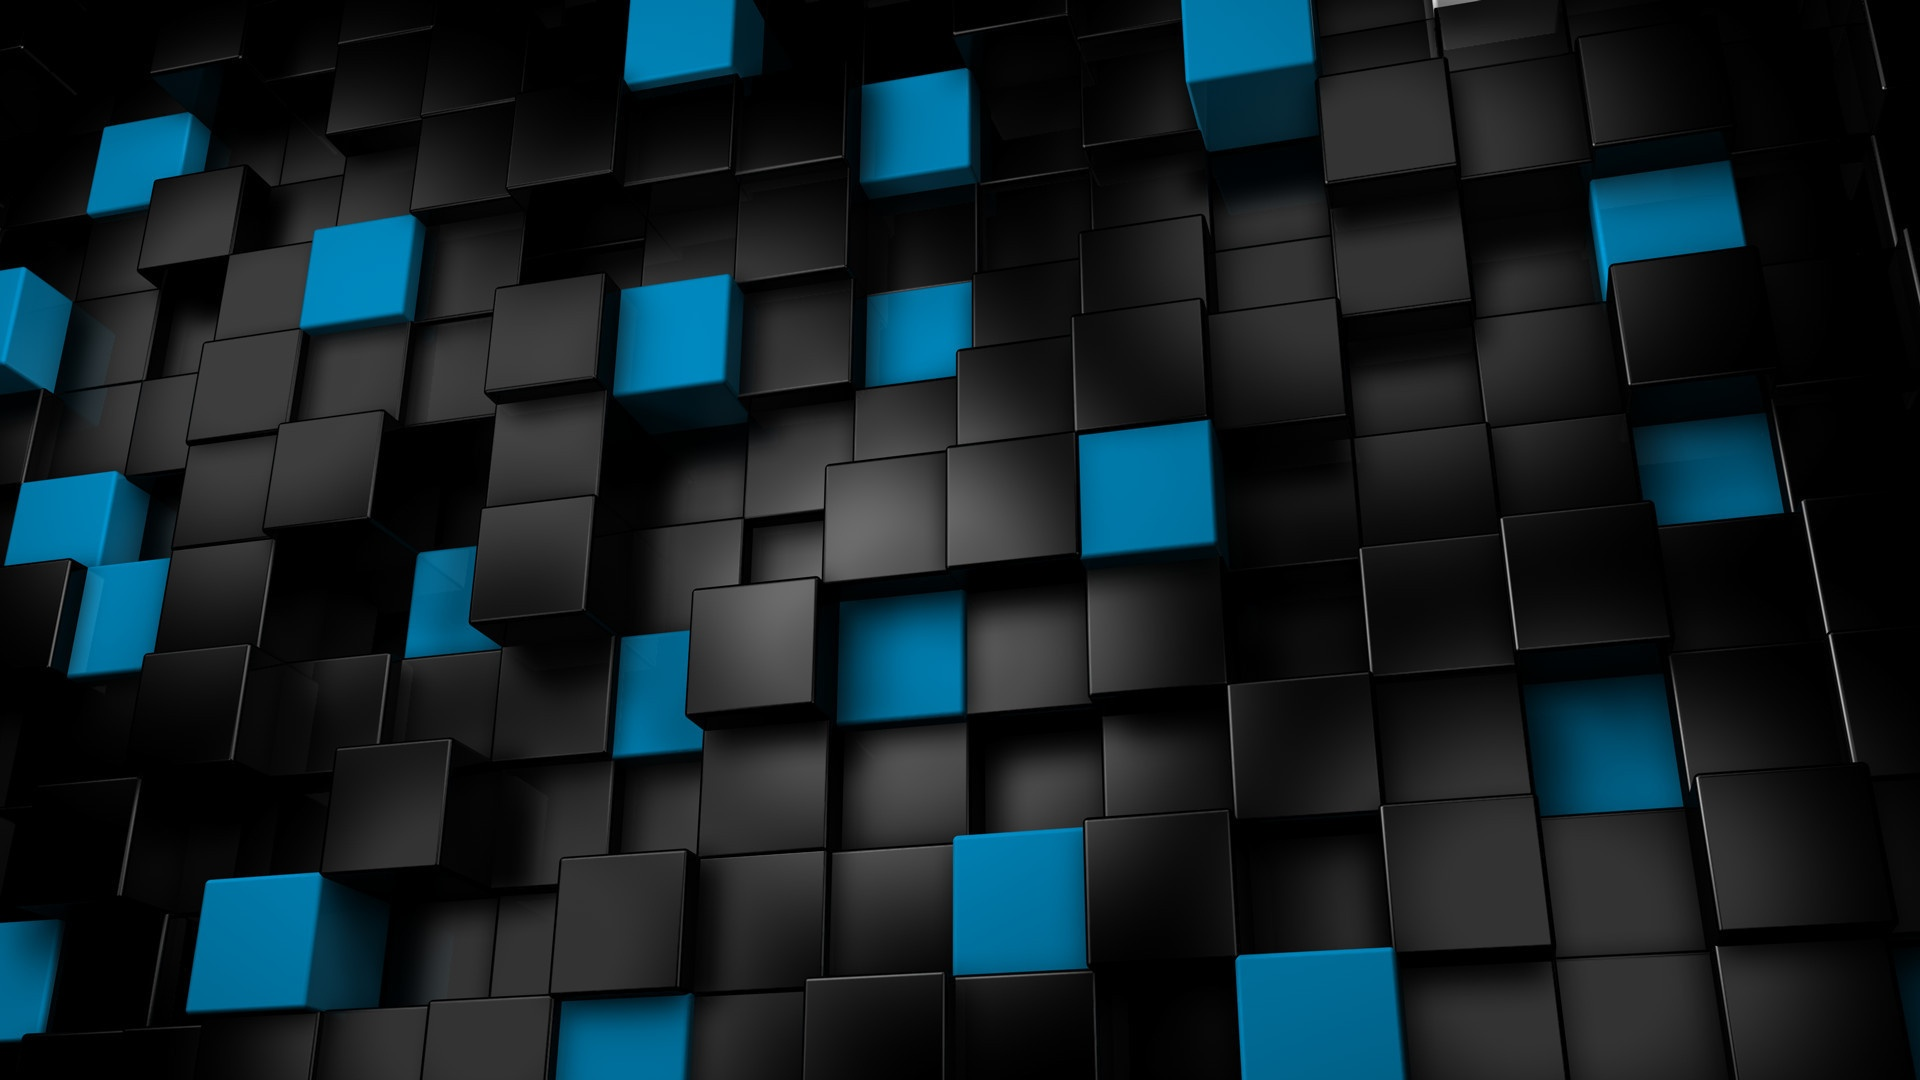 Blue and Black Cubic Backgrounds 154.97 Kb